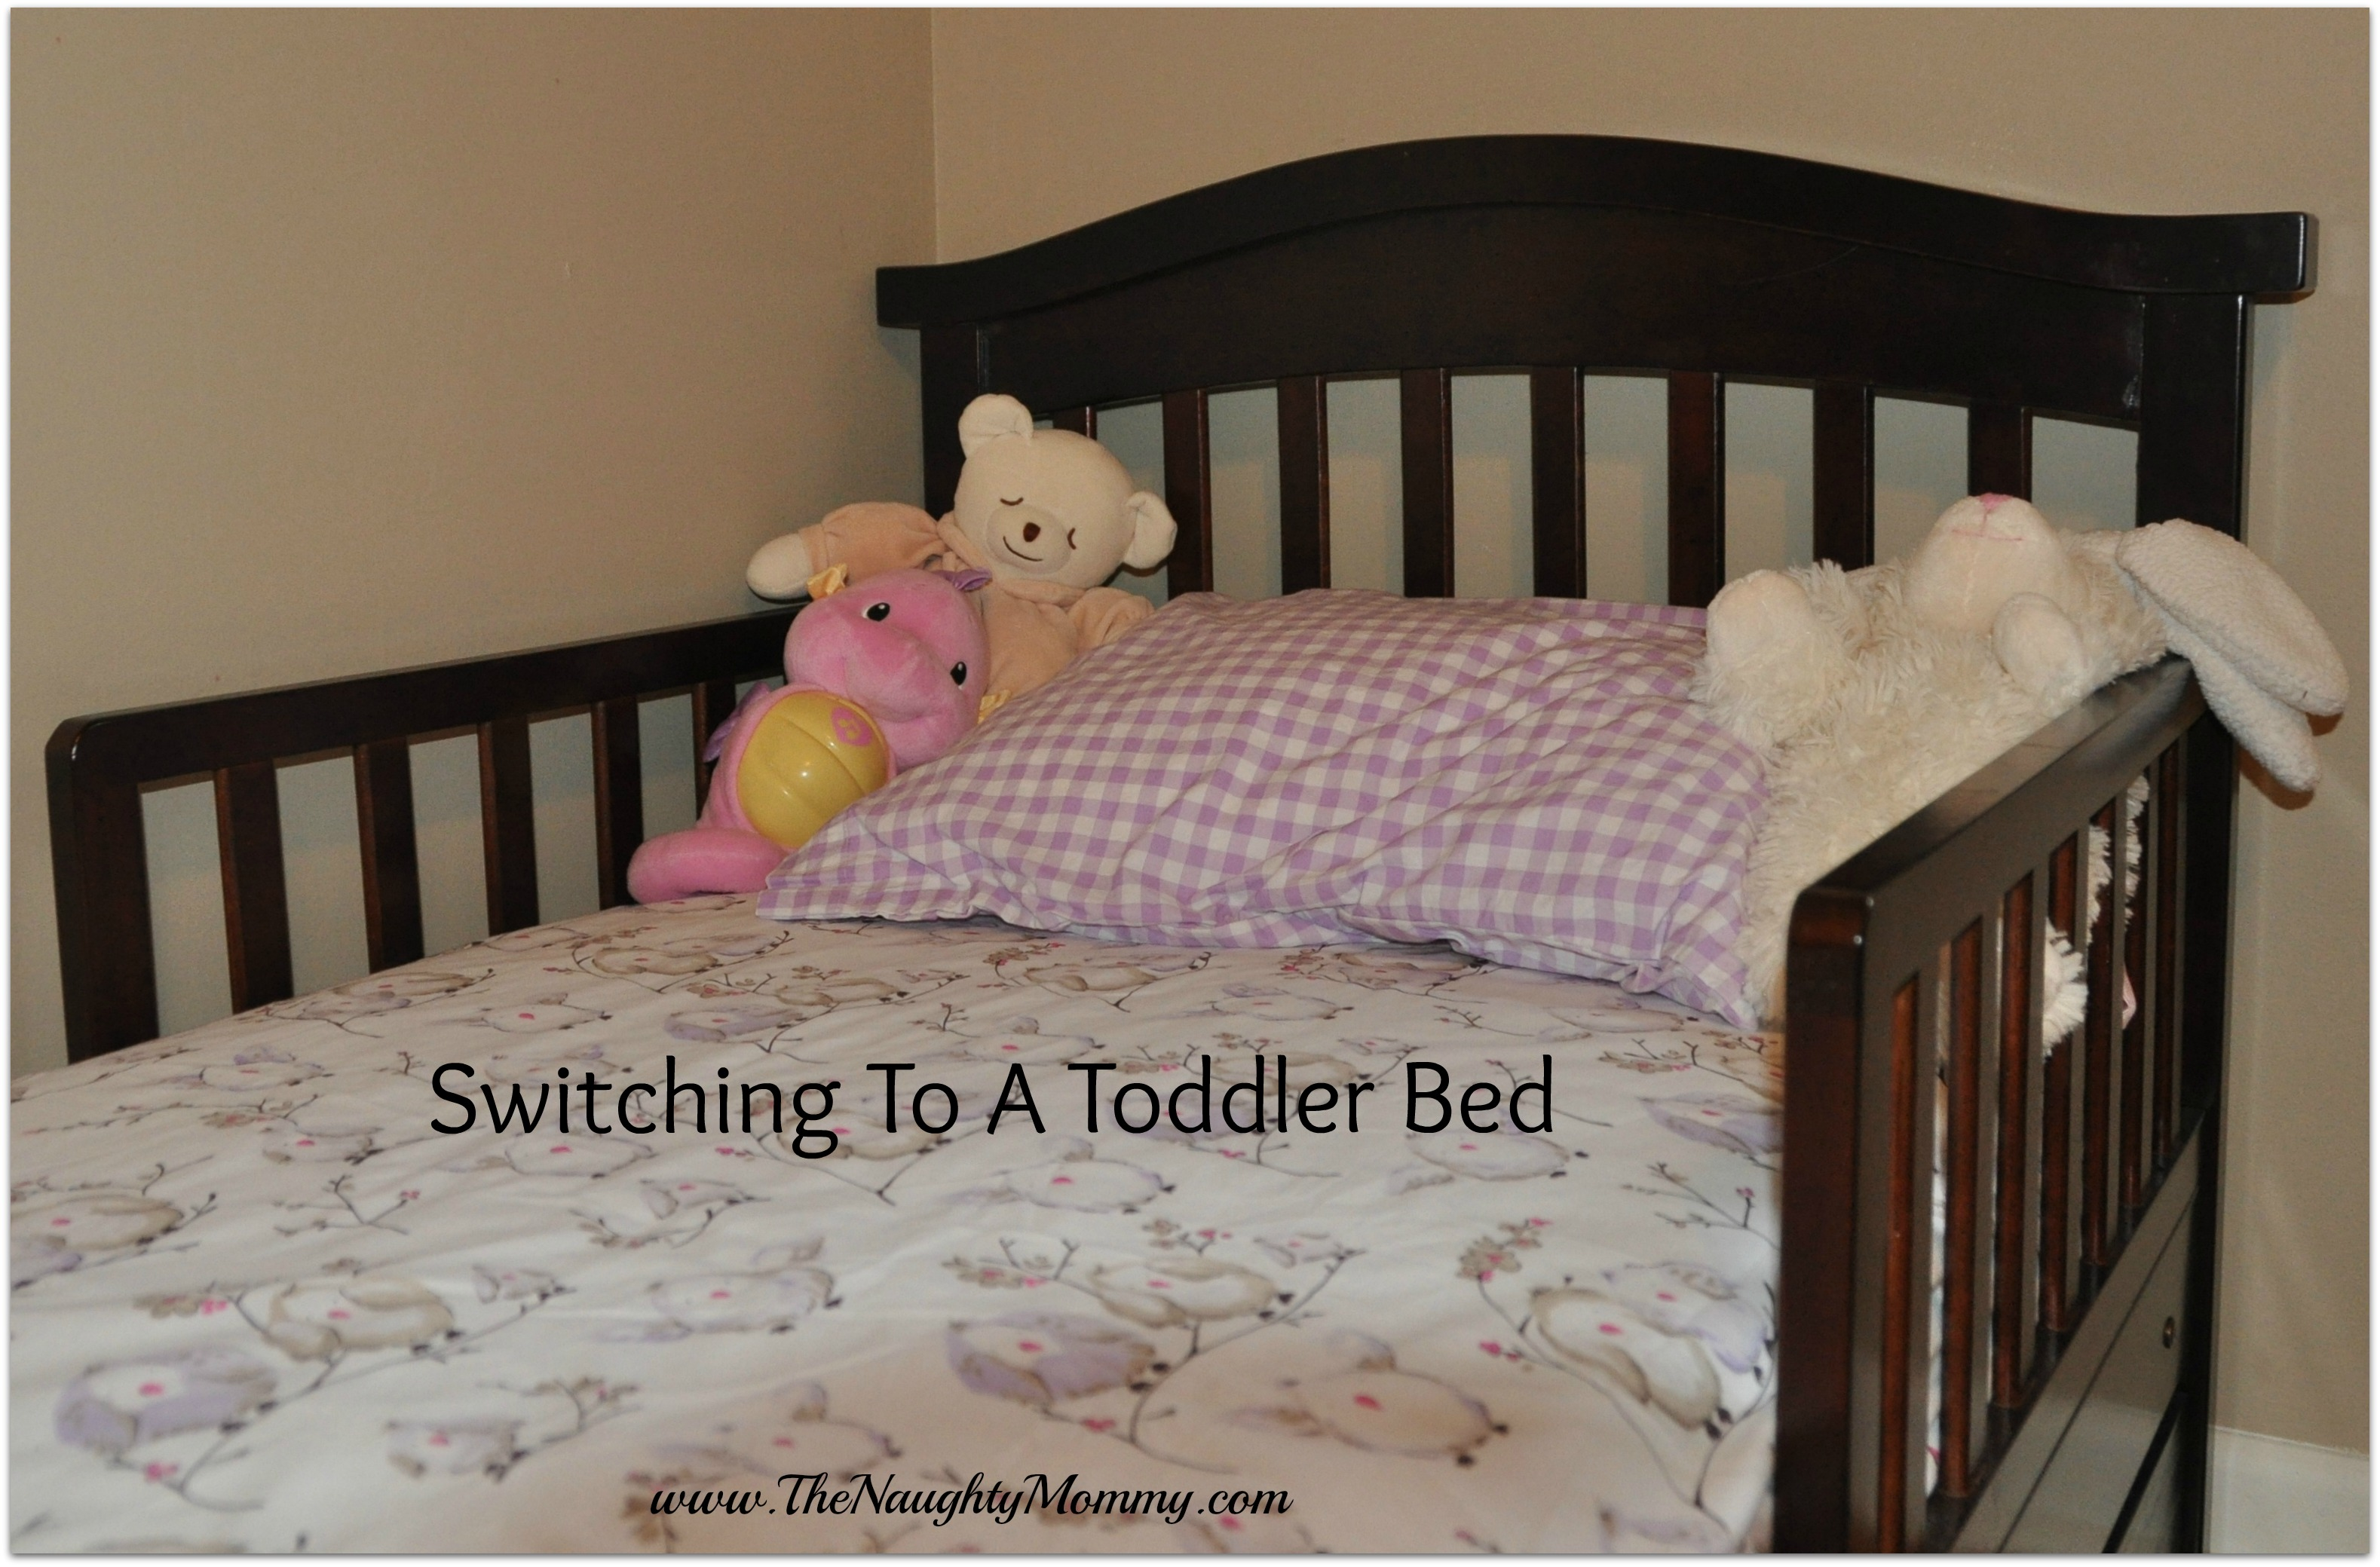 Switching to a Toddler Bed: Part 2 - The Naughty Mommy